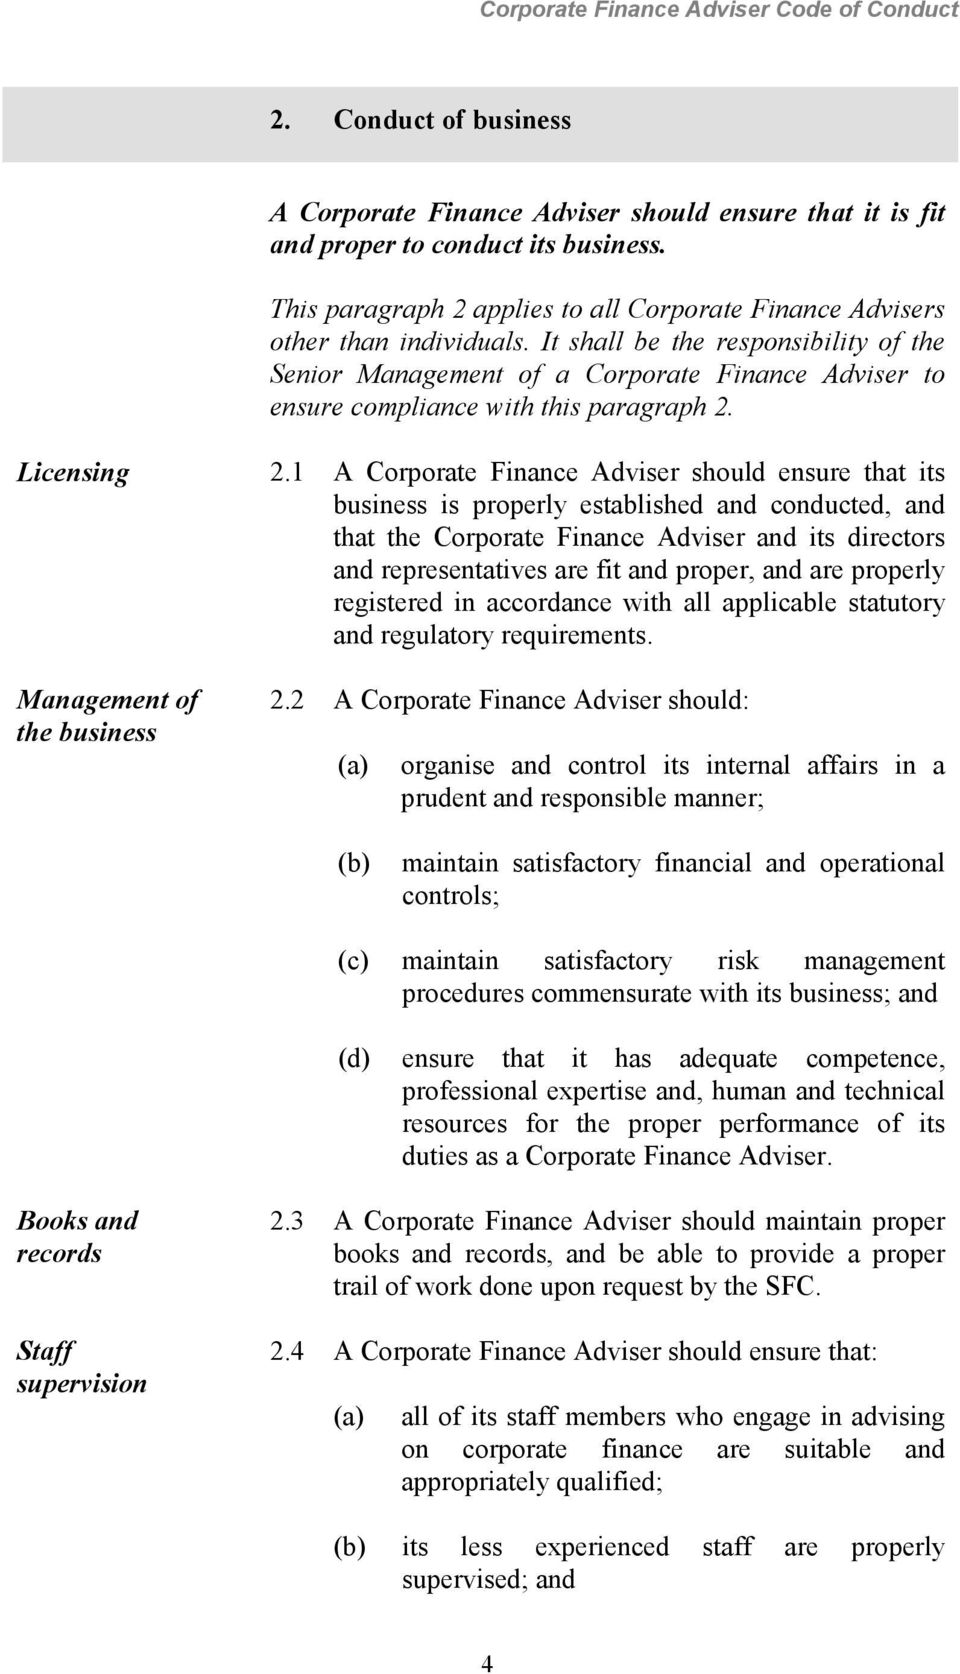 1 A Corporate Finance Adviser should ensure that its business is properly established and conducted, and that the Corporate Finance Adviser and its directors and representatives are fit and proper,